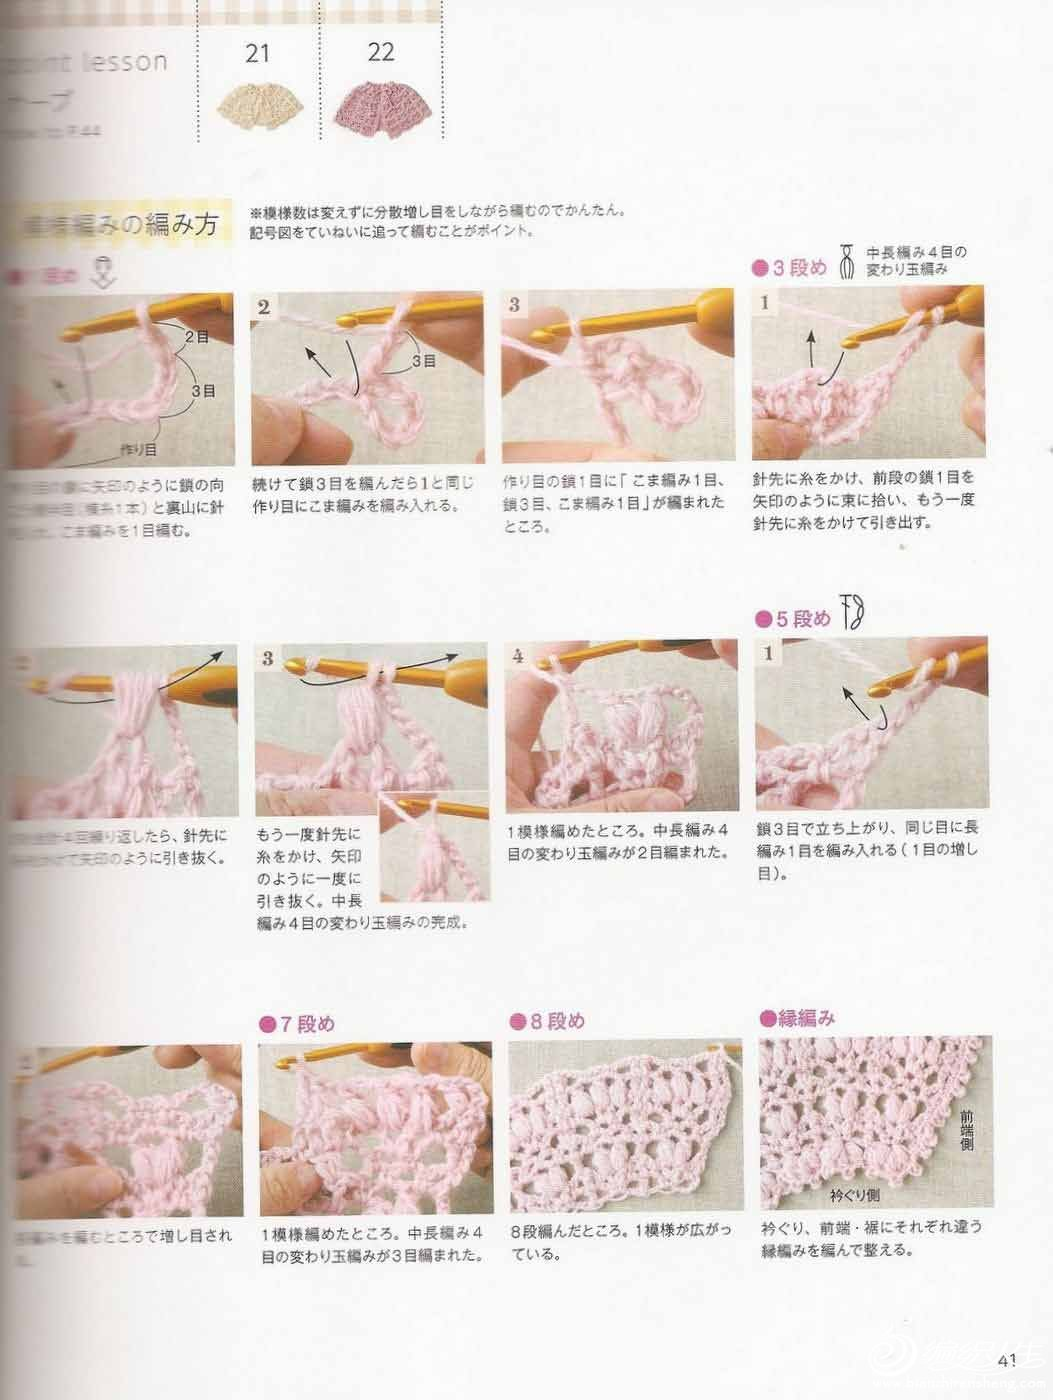 Happy crochet time for my baby_页面_43.jpg